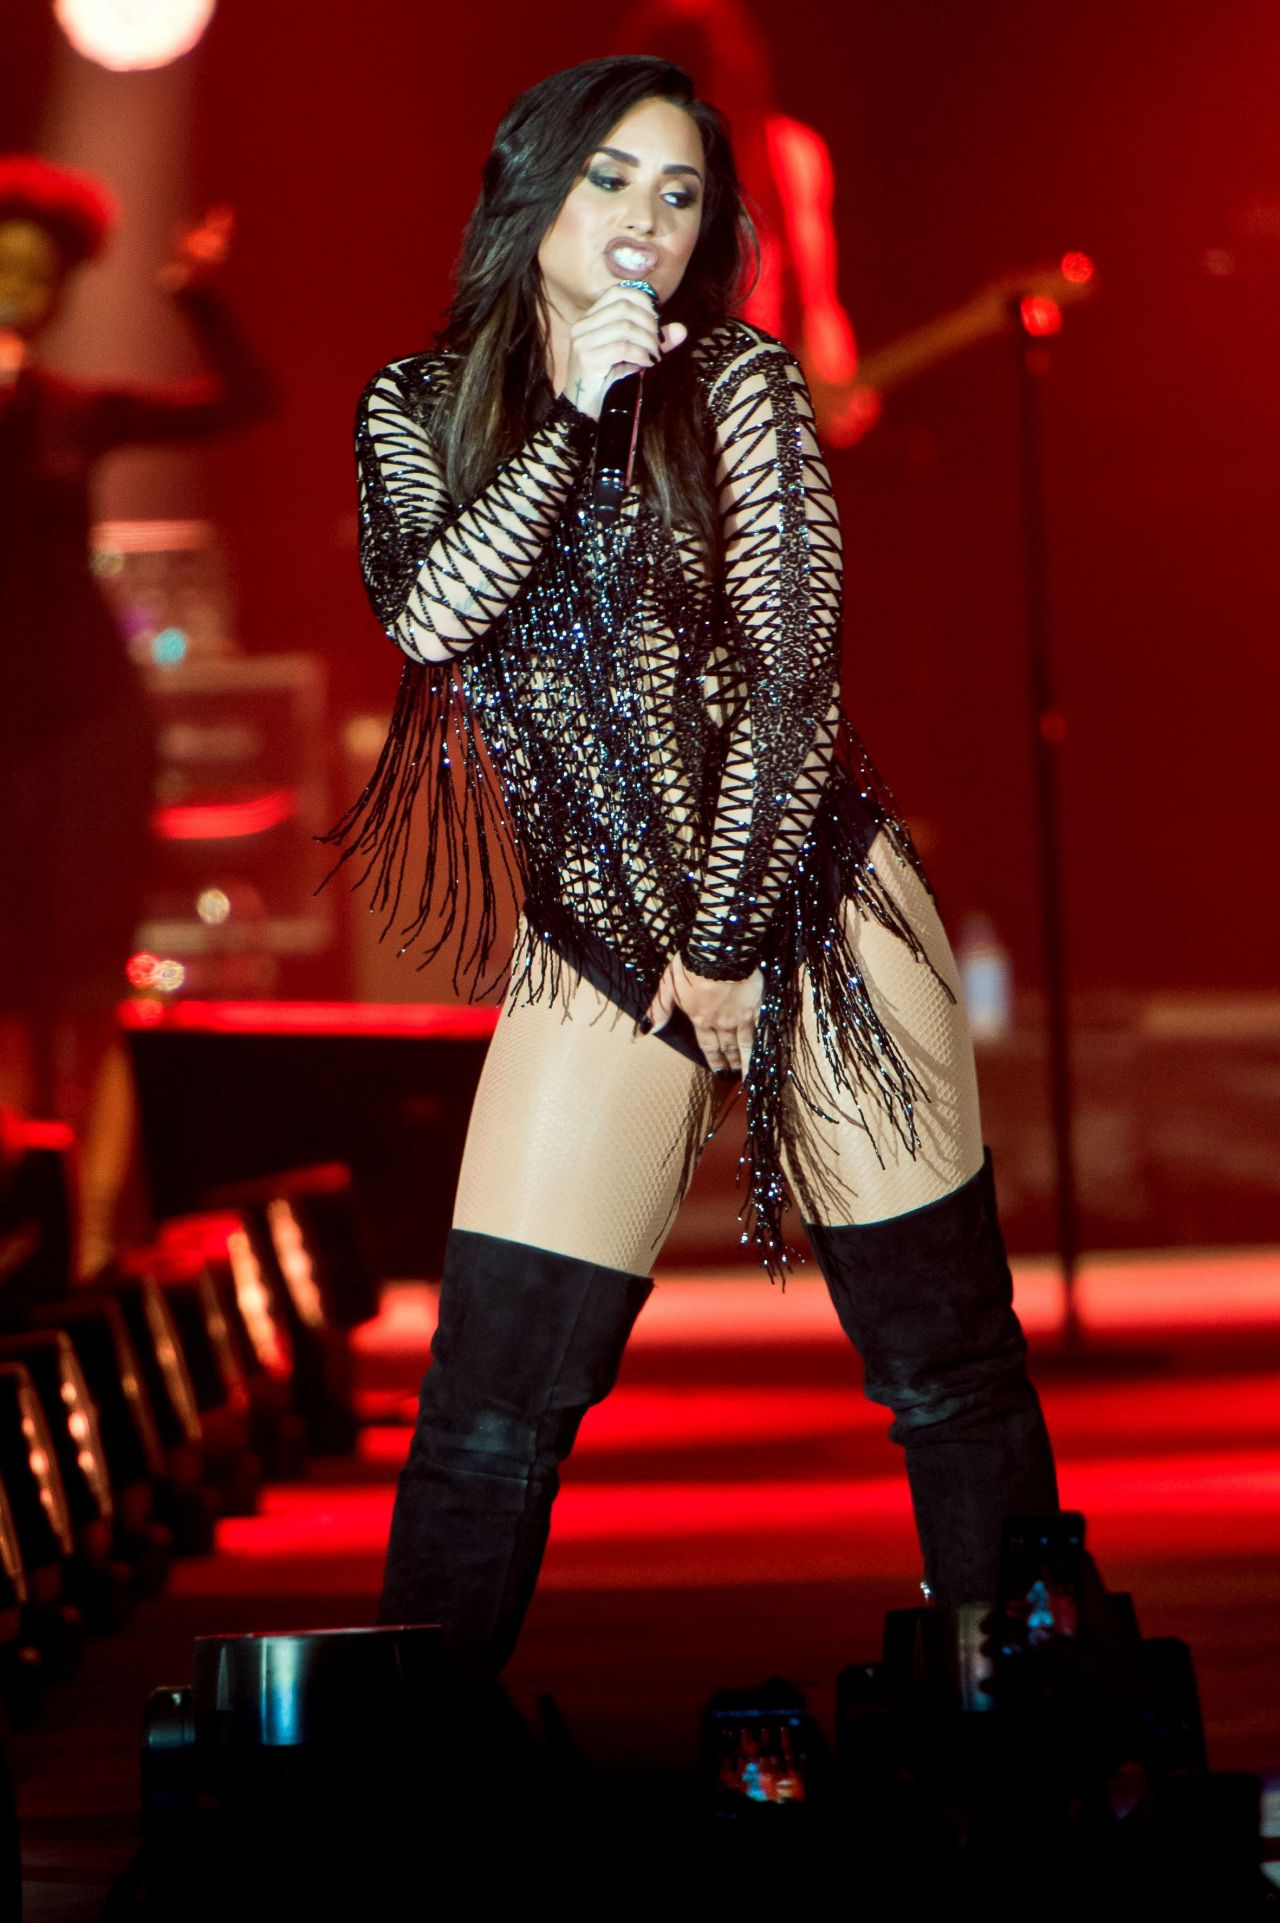 Demi Lovato  Performing at Redfestdxb Festival in Dubai 2 - Demi Lovato Hairstyles